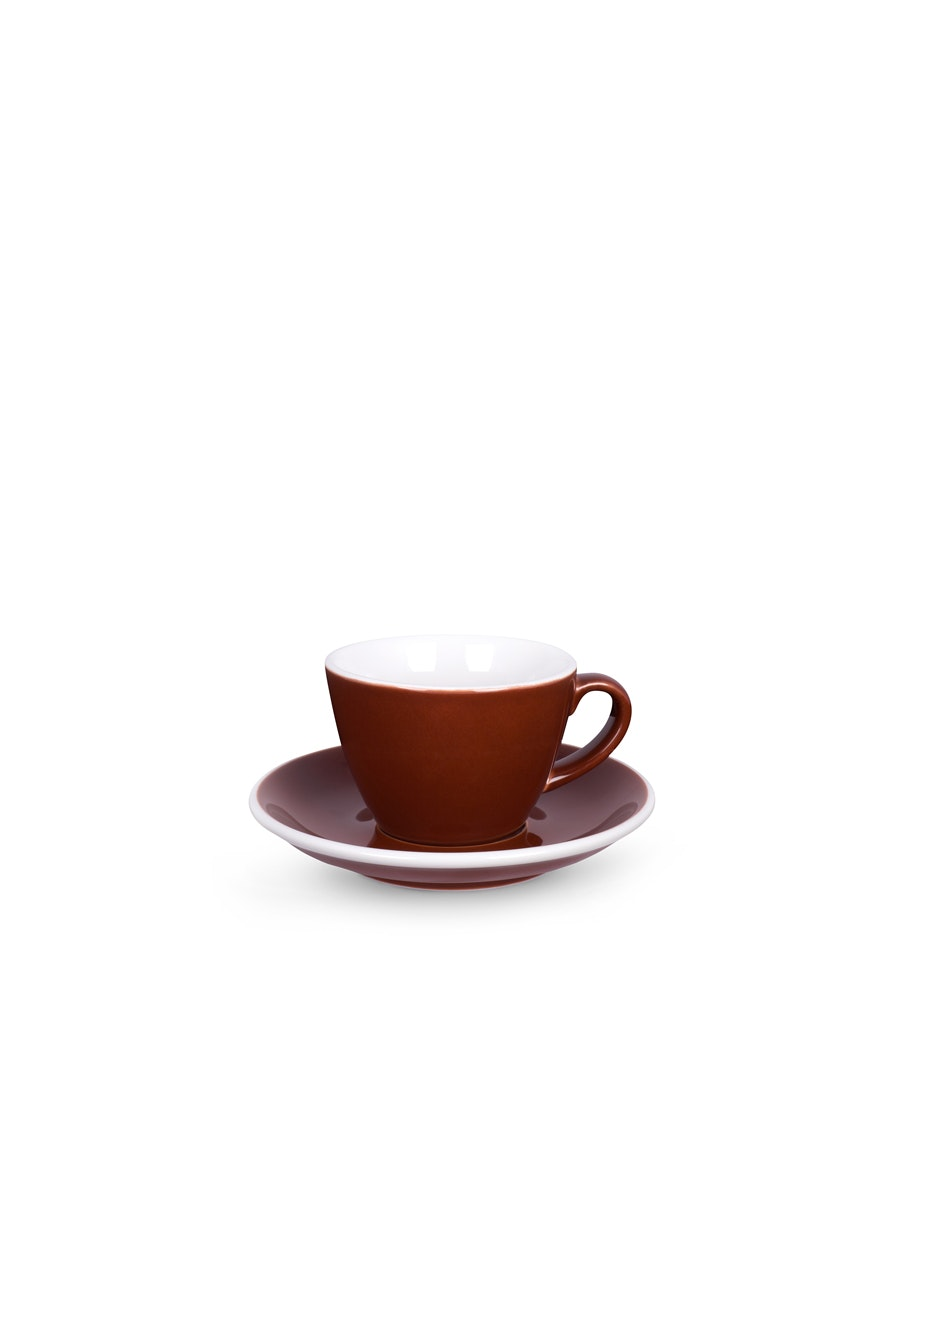 ACME - Set of 6 Brown Flat White and Saucer Set